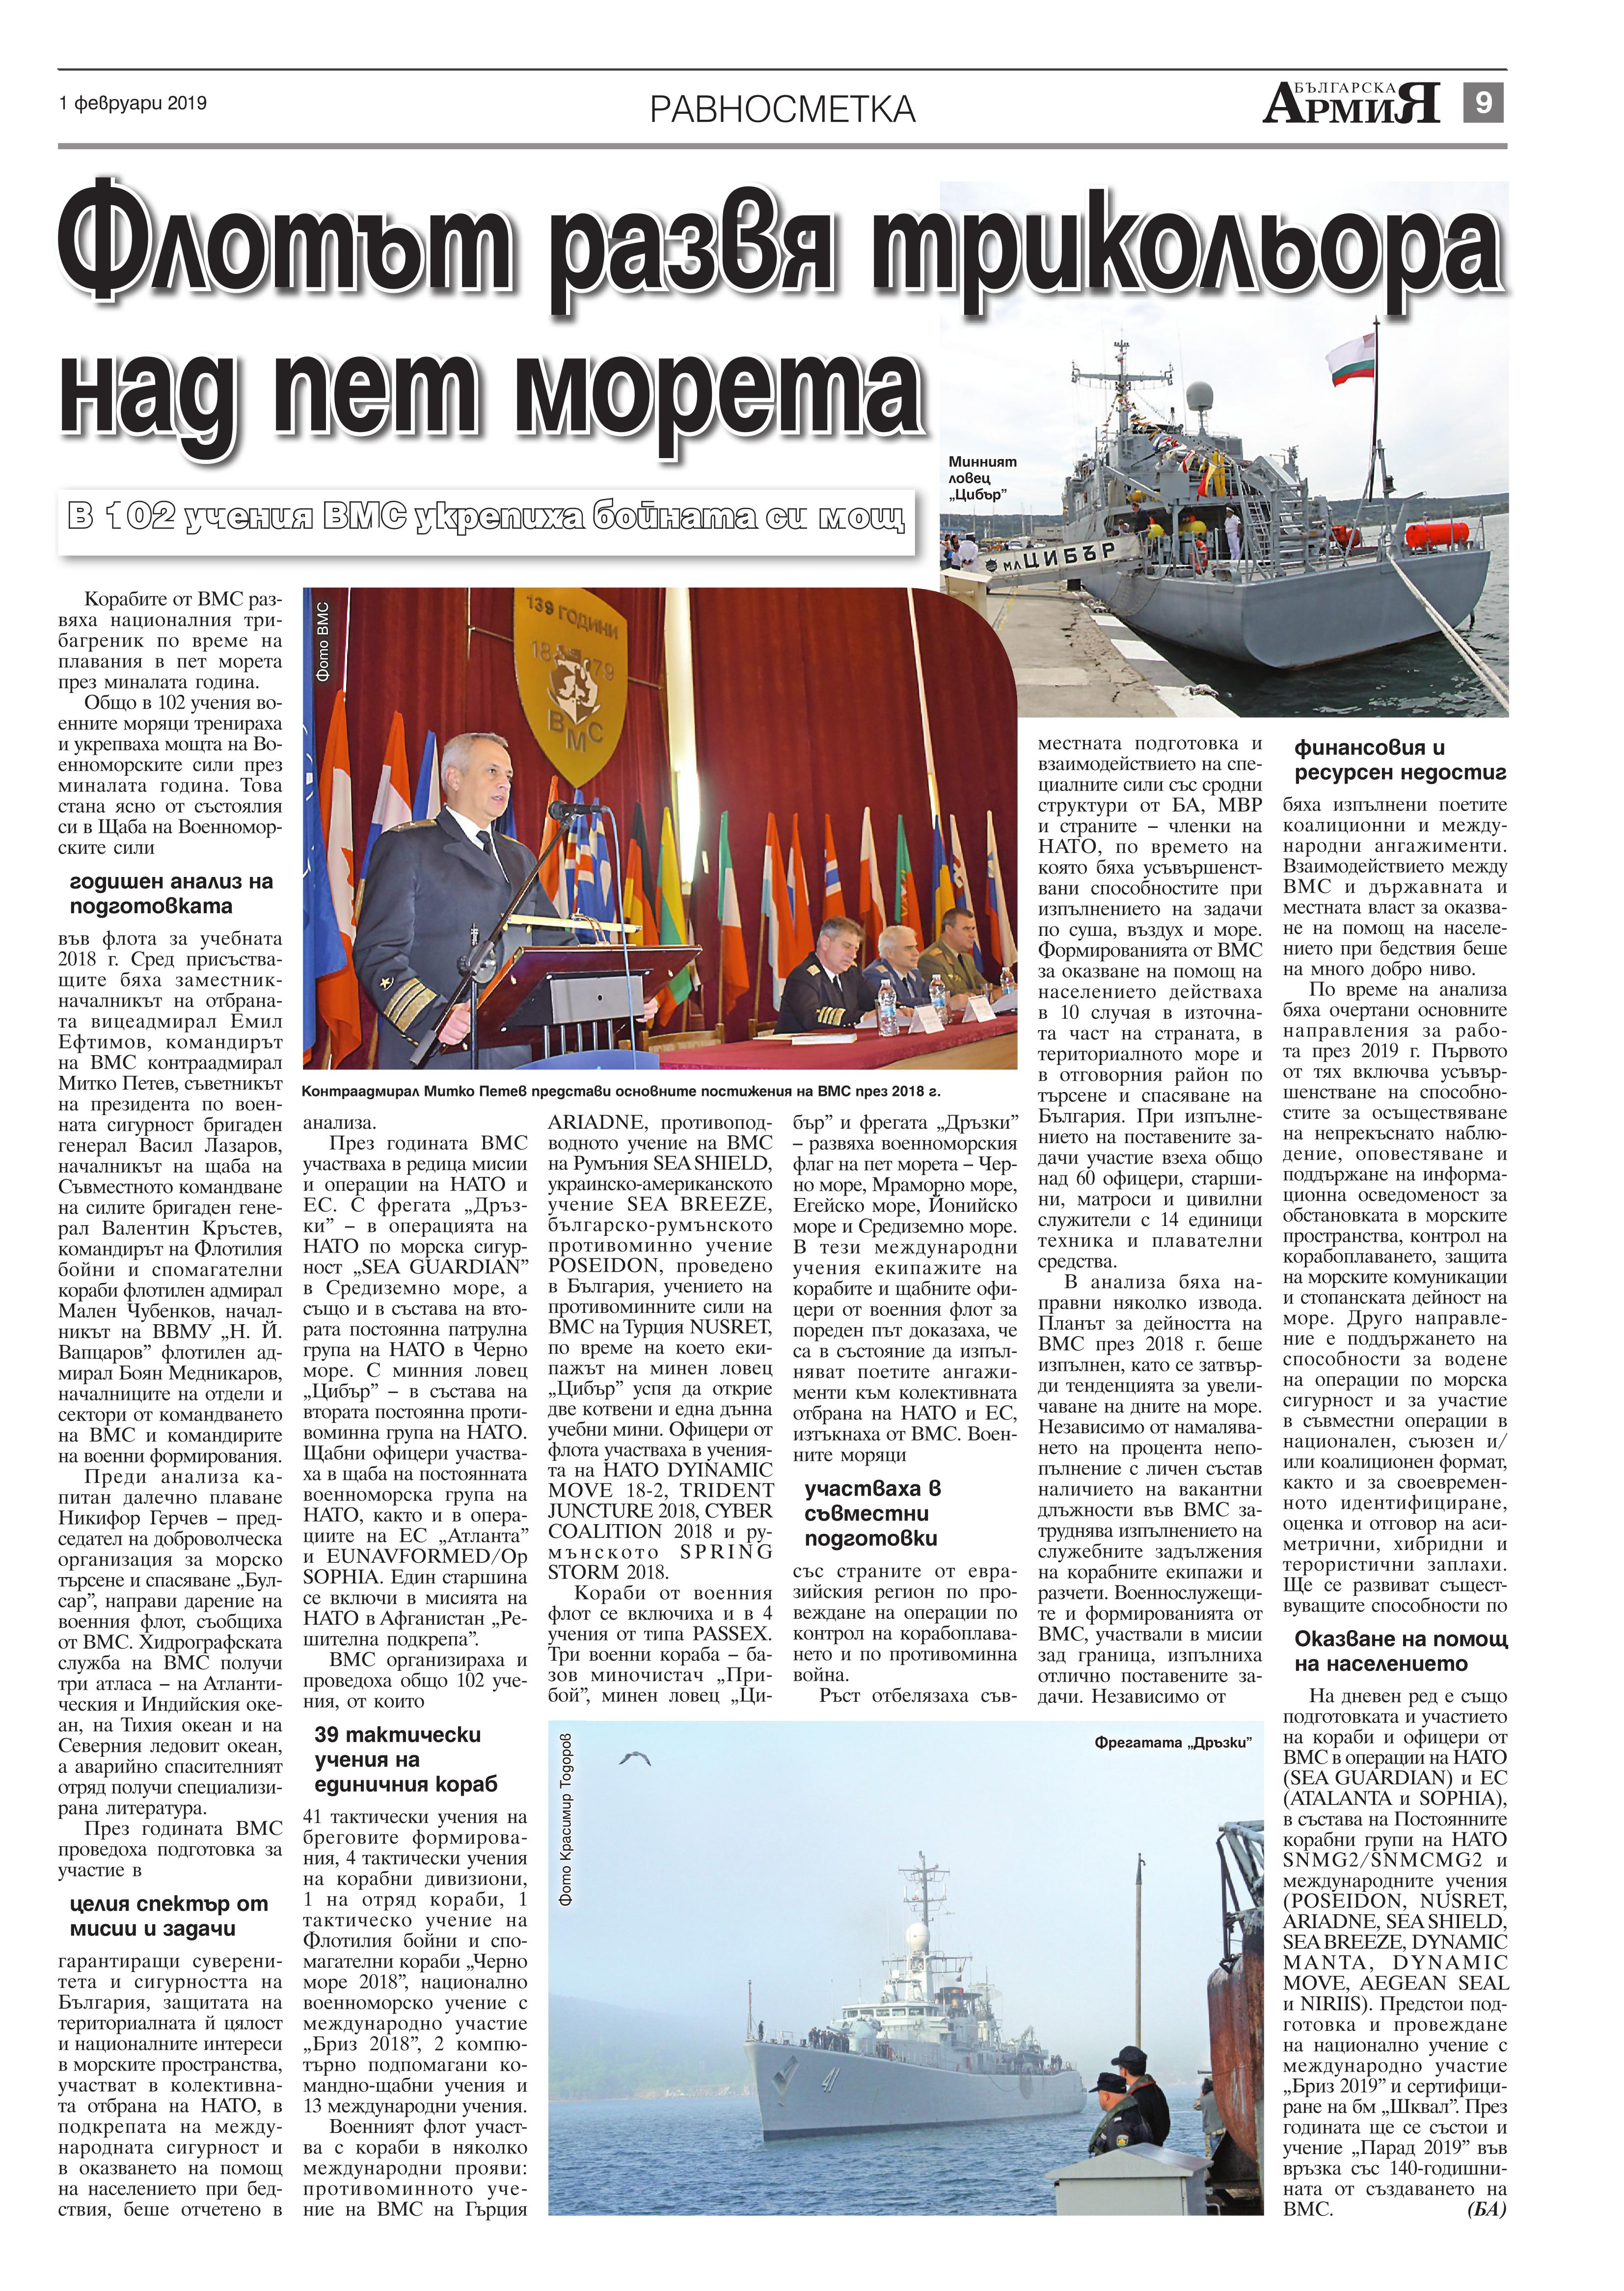 https://armymedia.bg/wp-content/uploads/2015/06/09.page1_-80.jpg